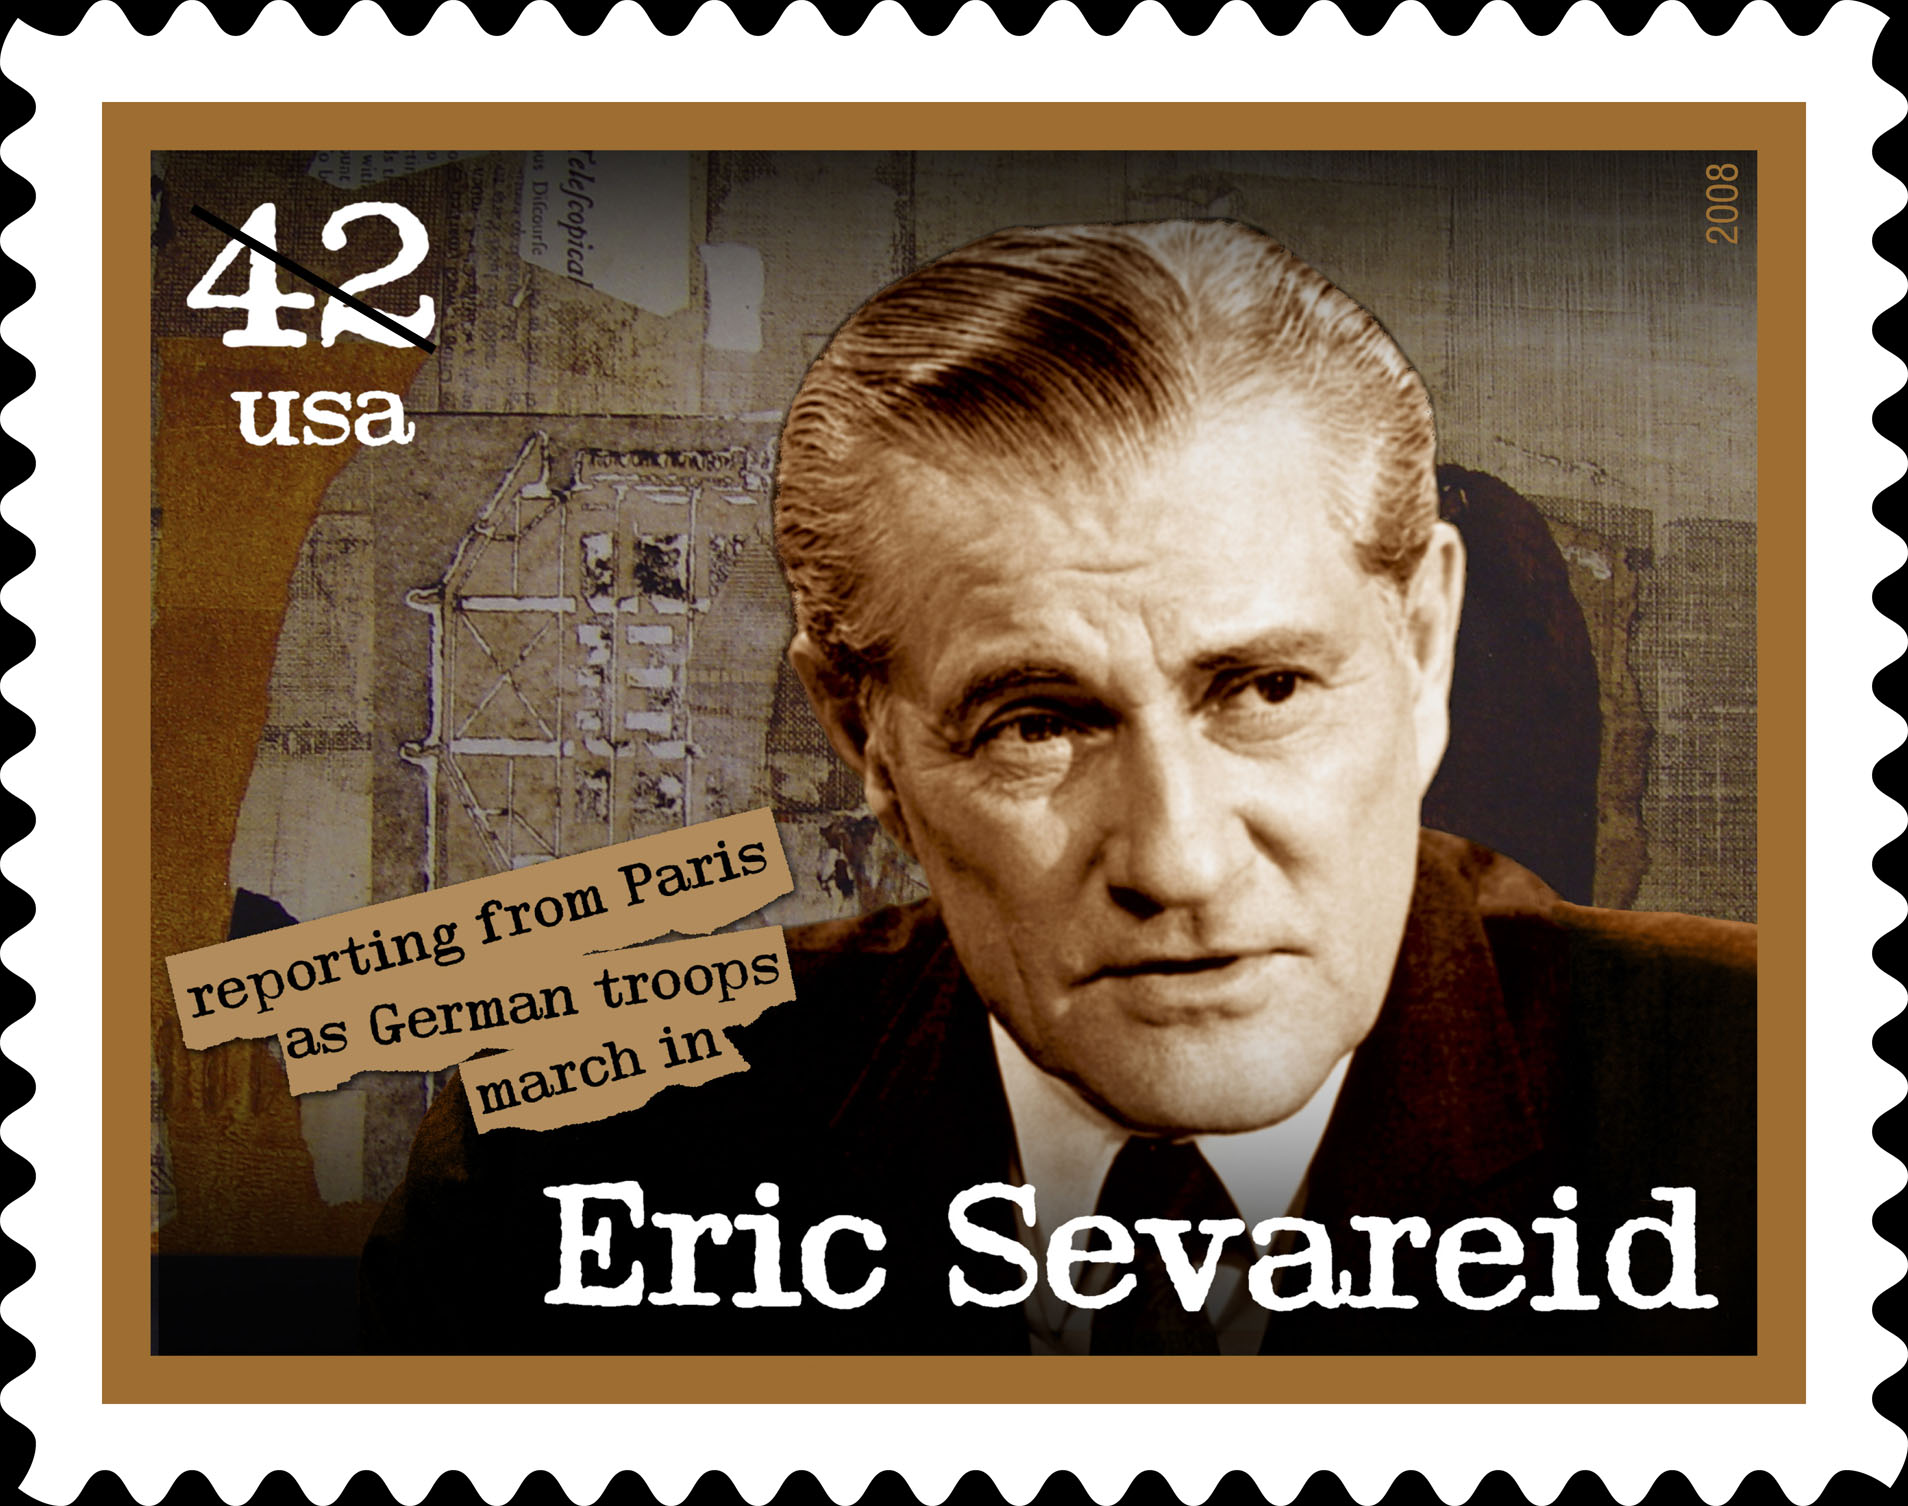 Eric Sevareid's quote #2